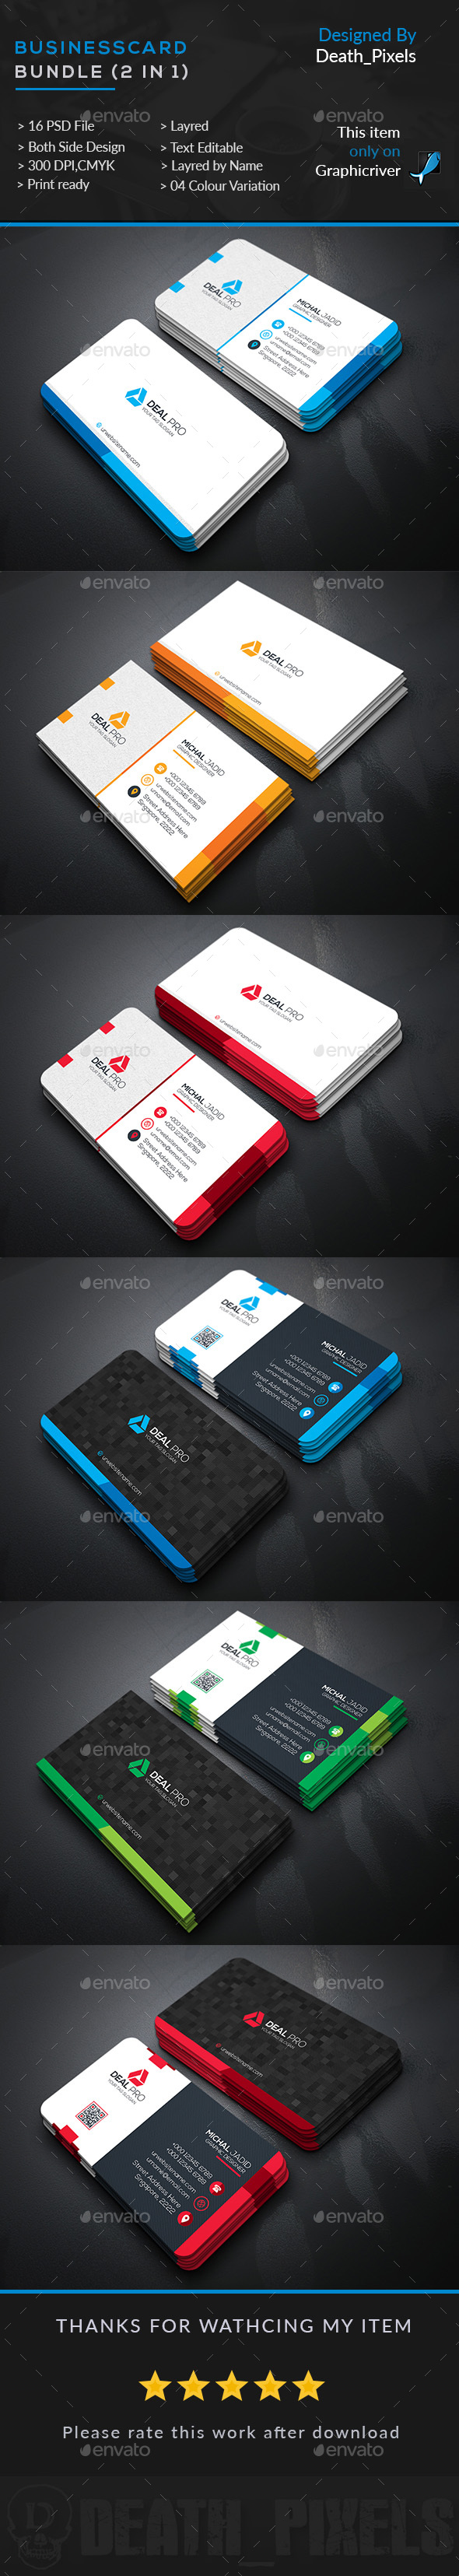 Business Card #Bundle (2 in 1) - Business #Cards Print Templates ...